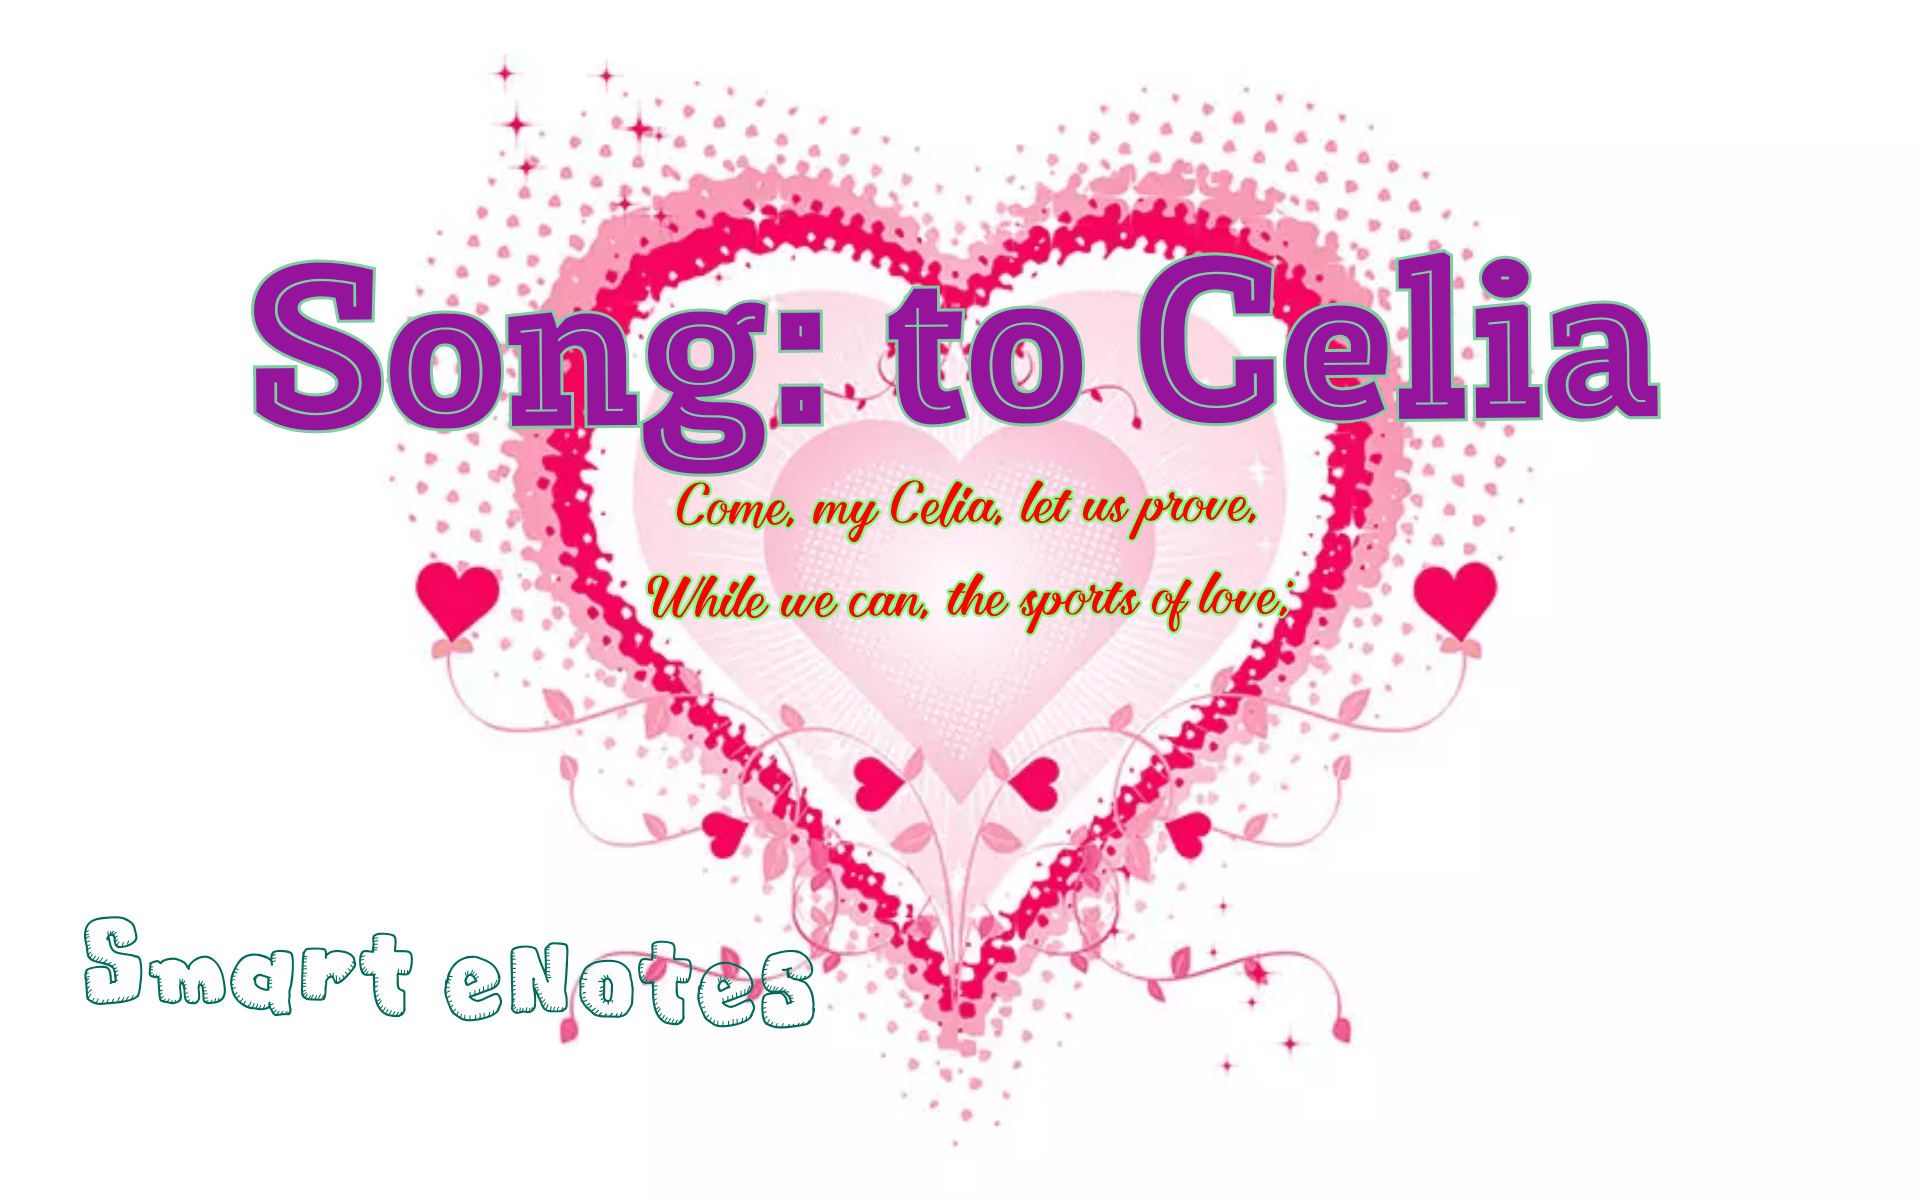 Song: to Celia [Come, my Celia, let us prove] Summary and Analysis 4